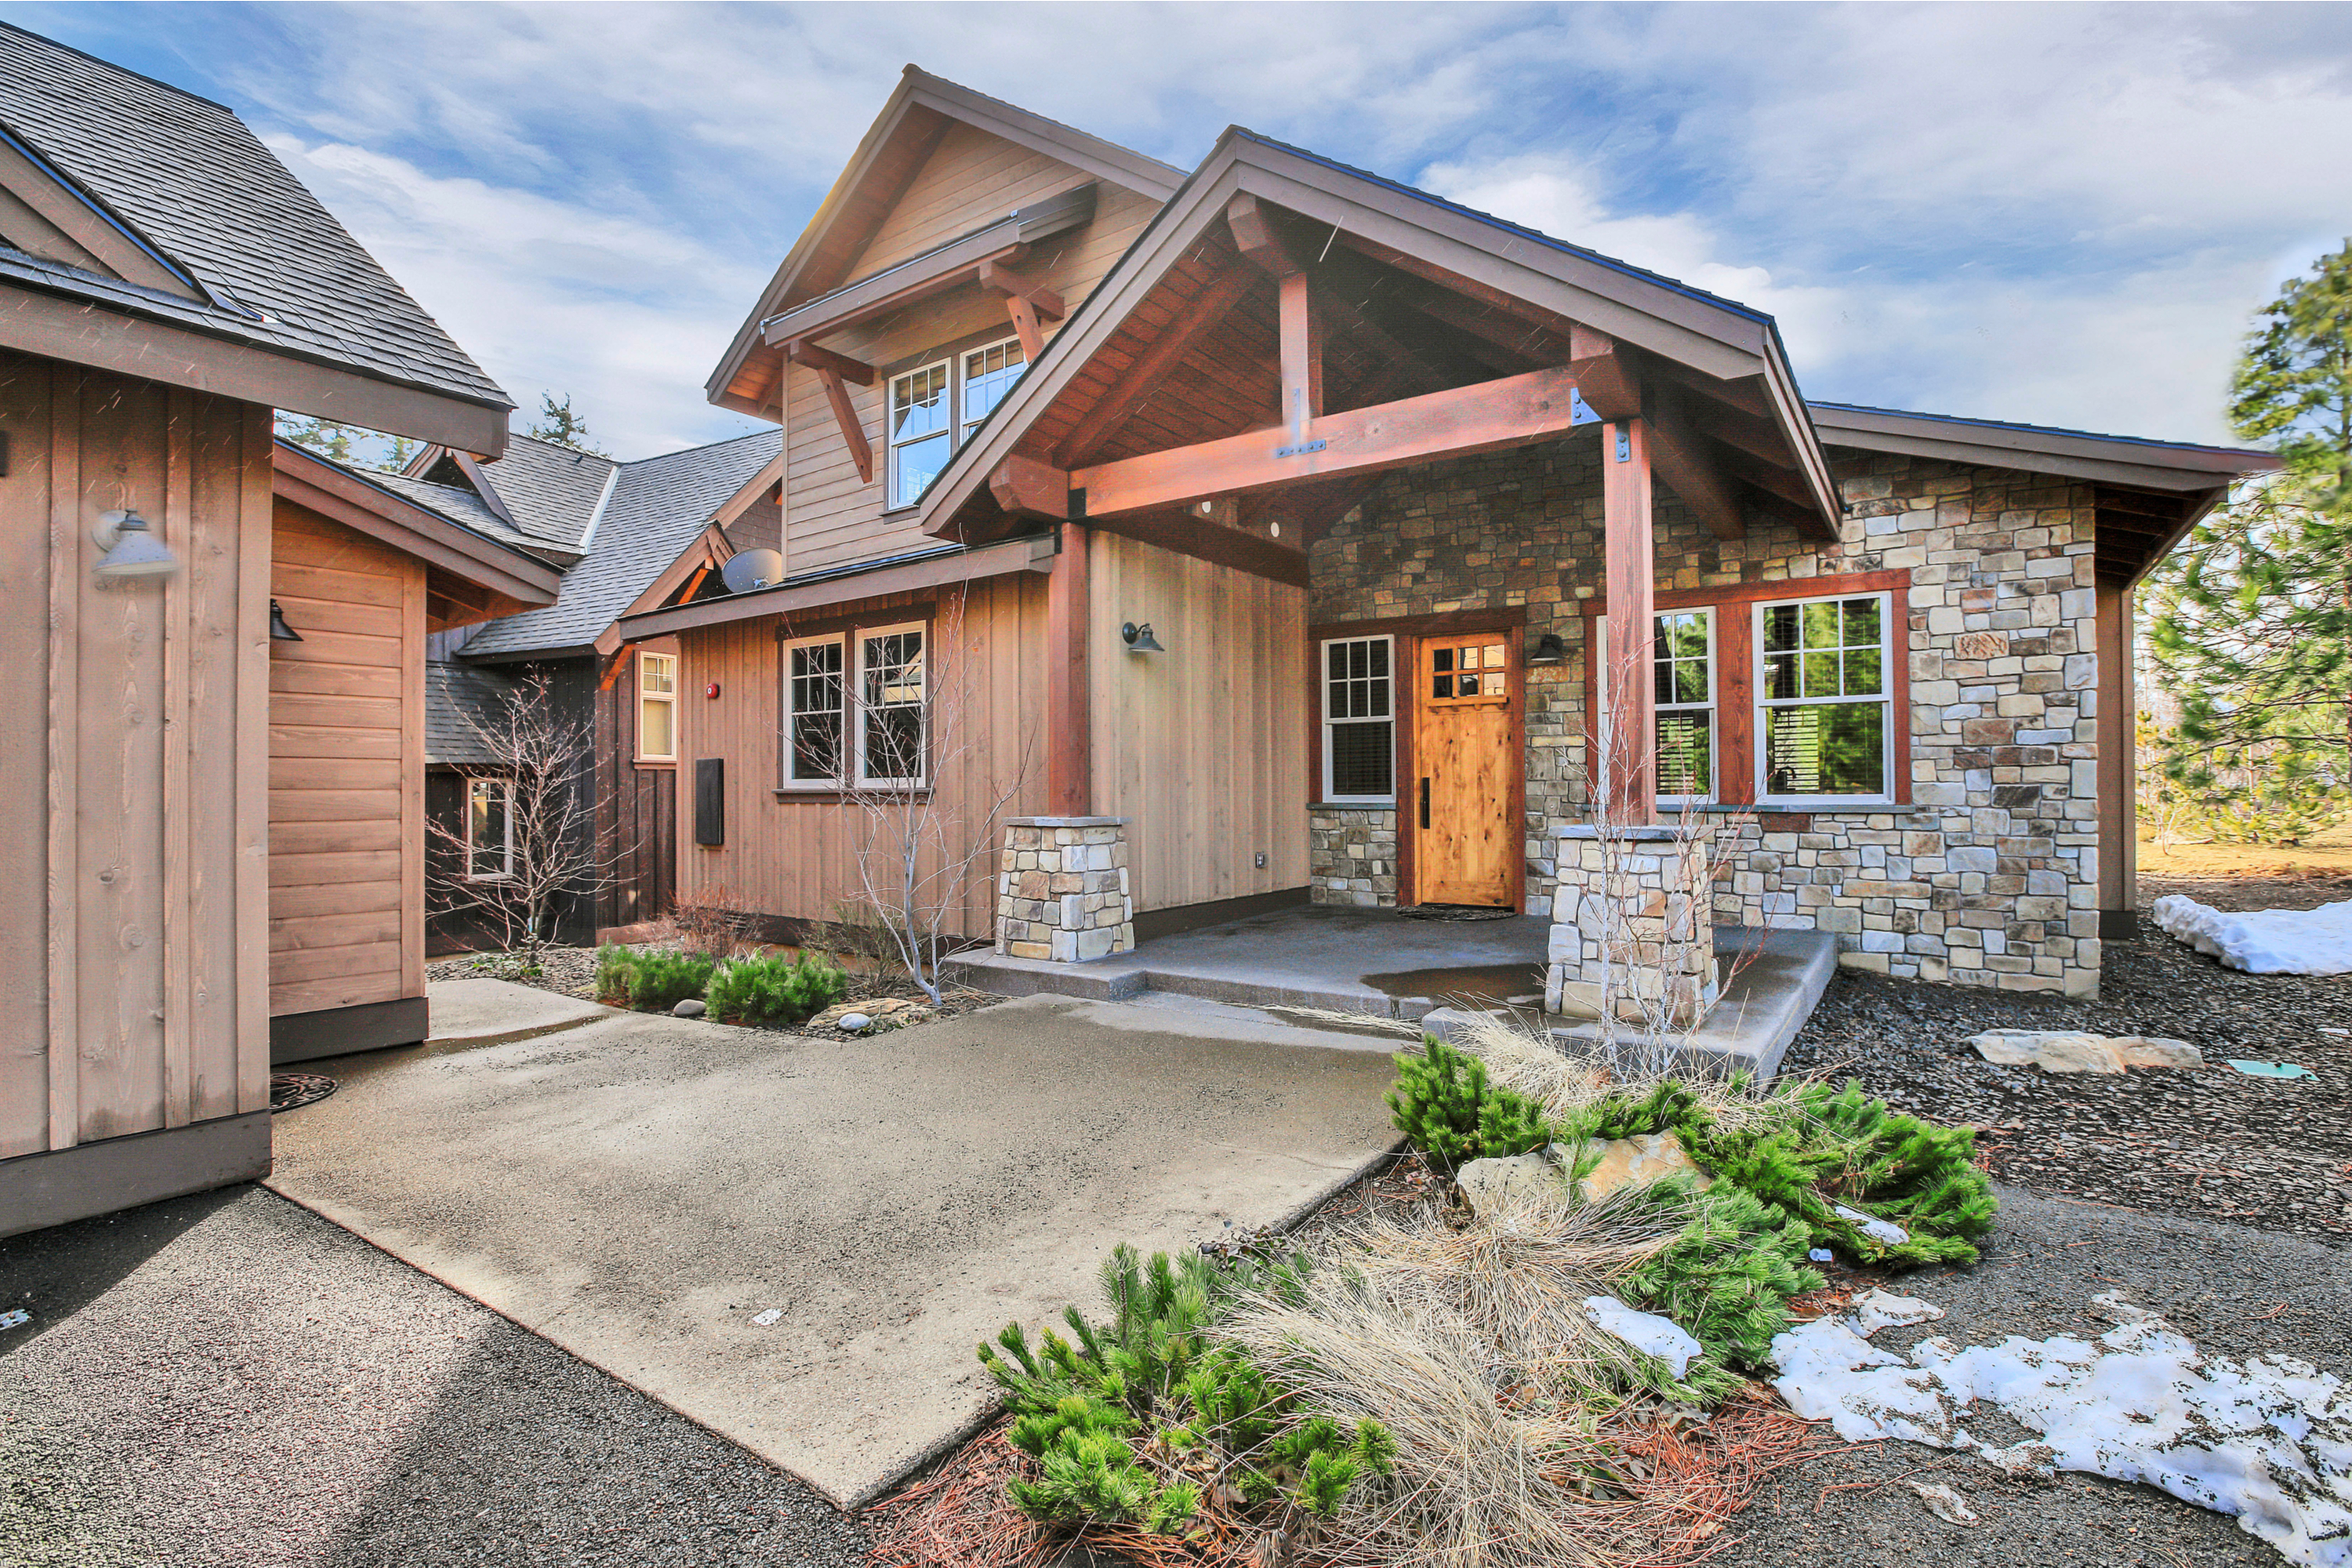 craftsman home | craftsman | home design | craftsman home design | design | historical craftsman home